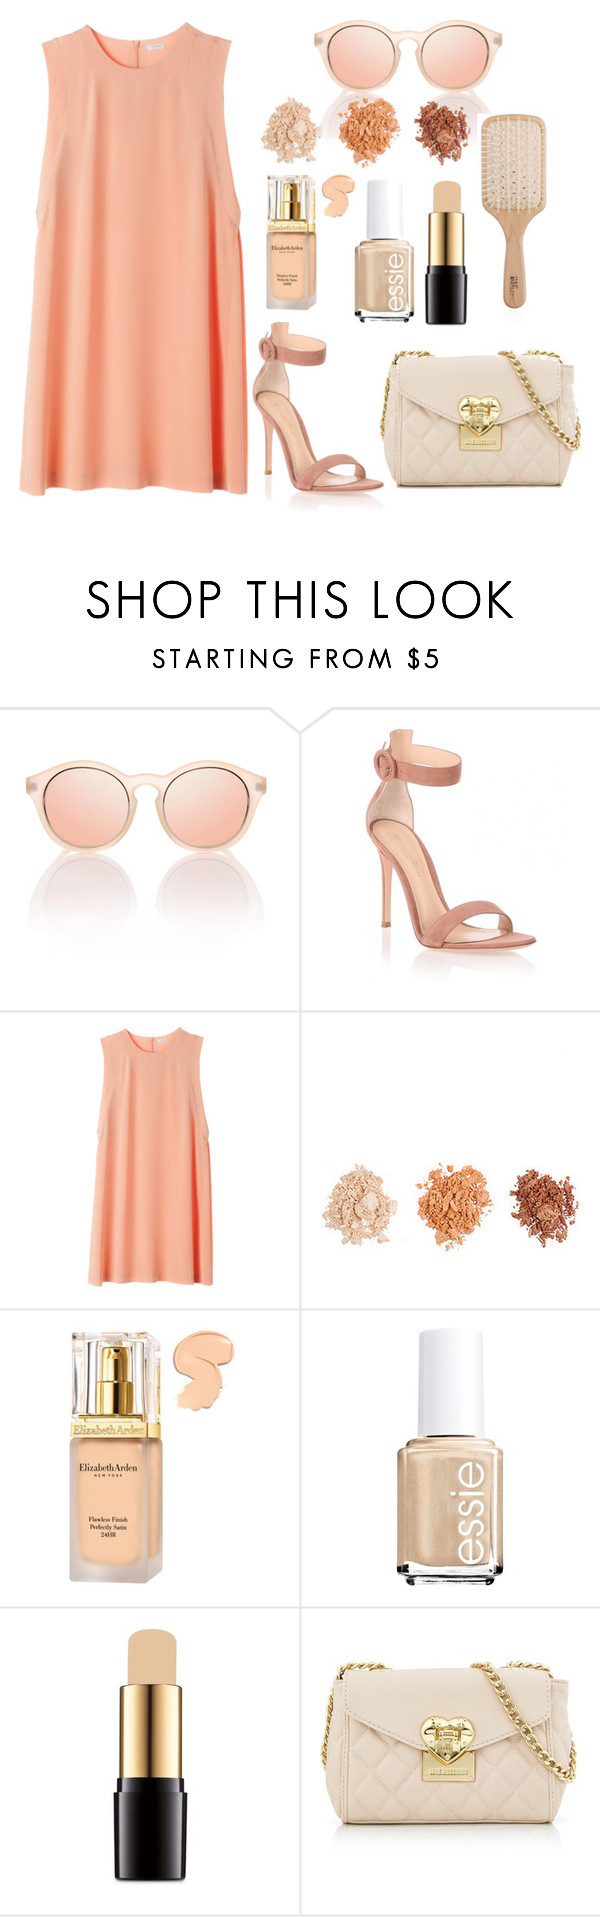 """#123"" by londero-danielle ❤ liked on Polyvore featuring Gianvito Rossi, Forever 21, Elizabeth Arden, Essie, Lancôme, Love Moschino and Philip Kingsley"